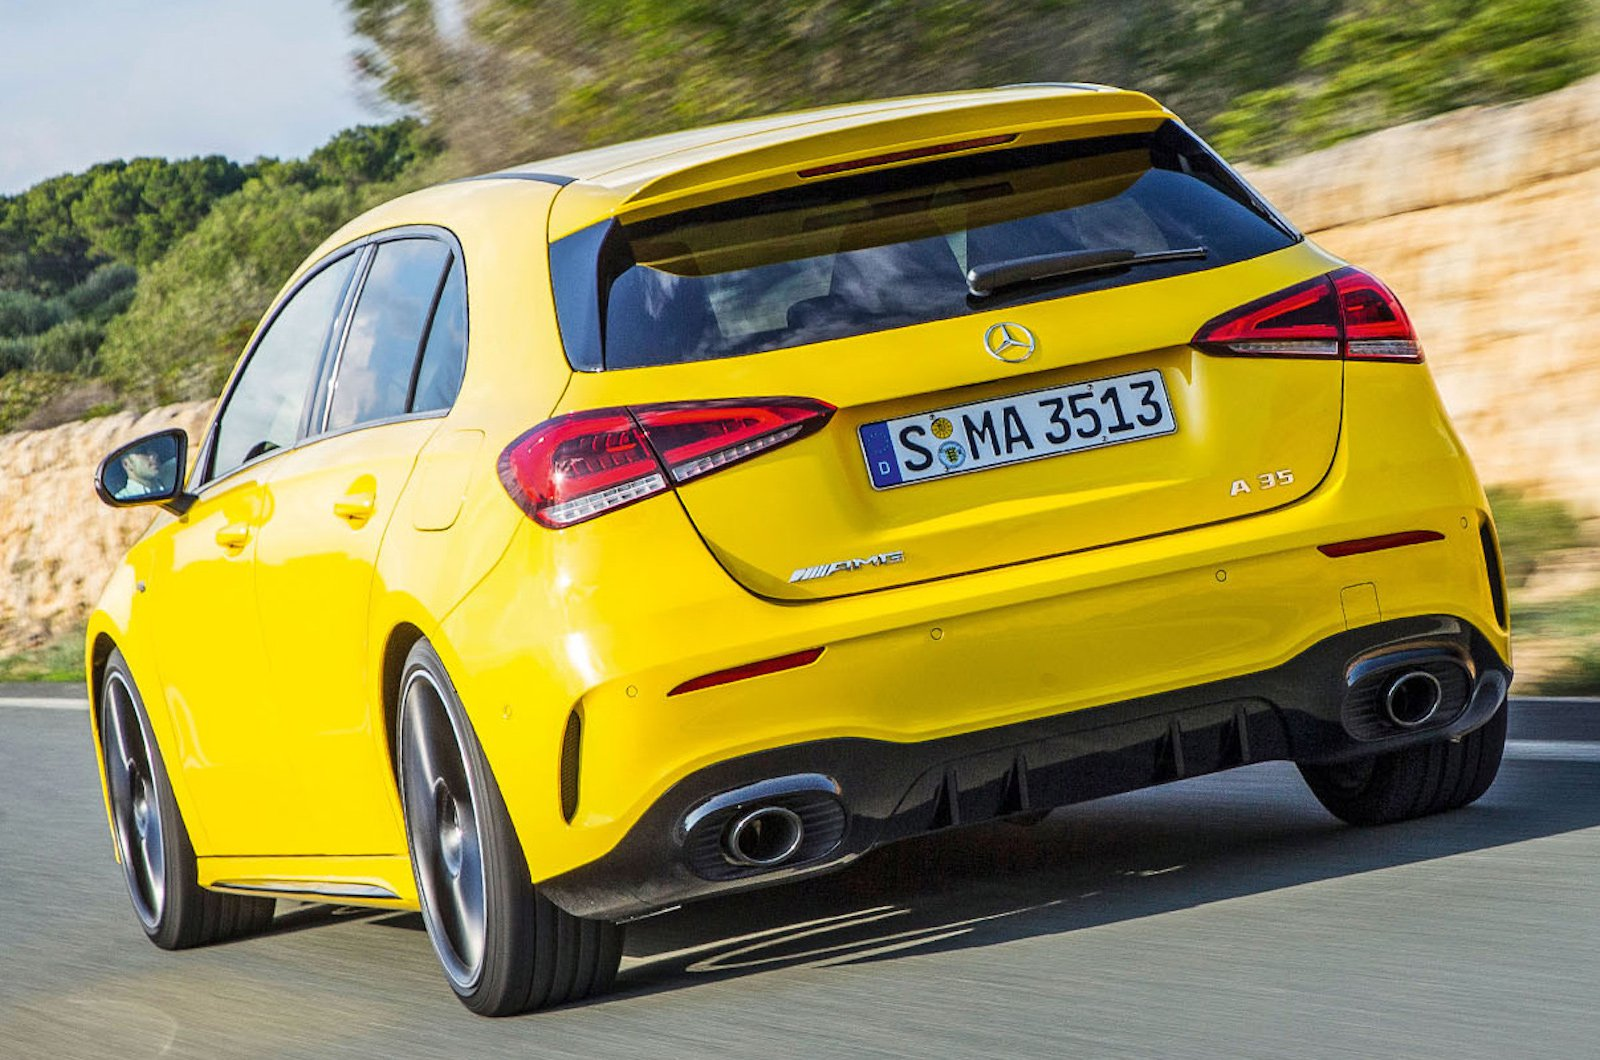 2019 Mercedes-AMG A35 4Matic - price, specs and release ...